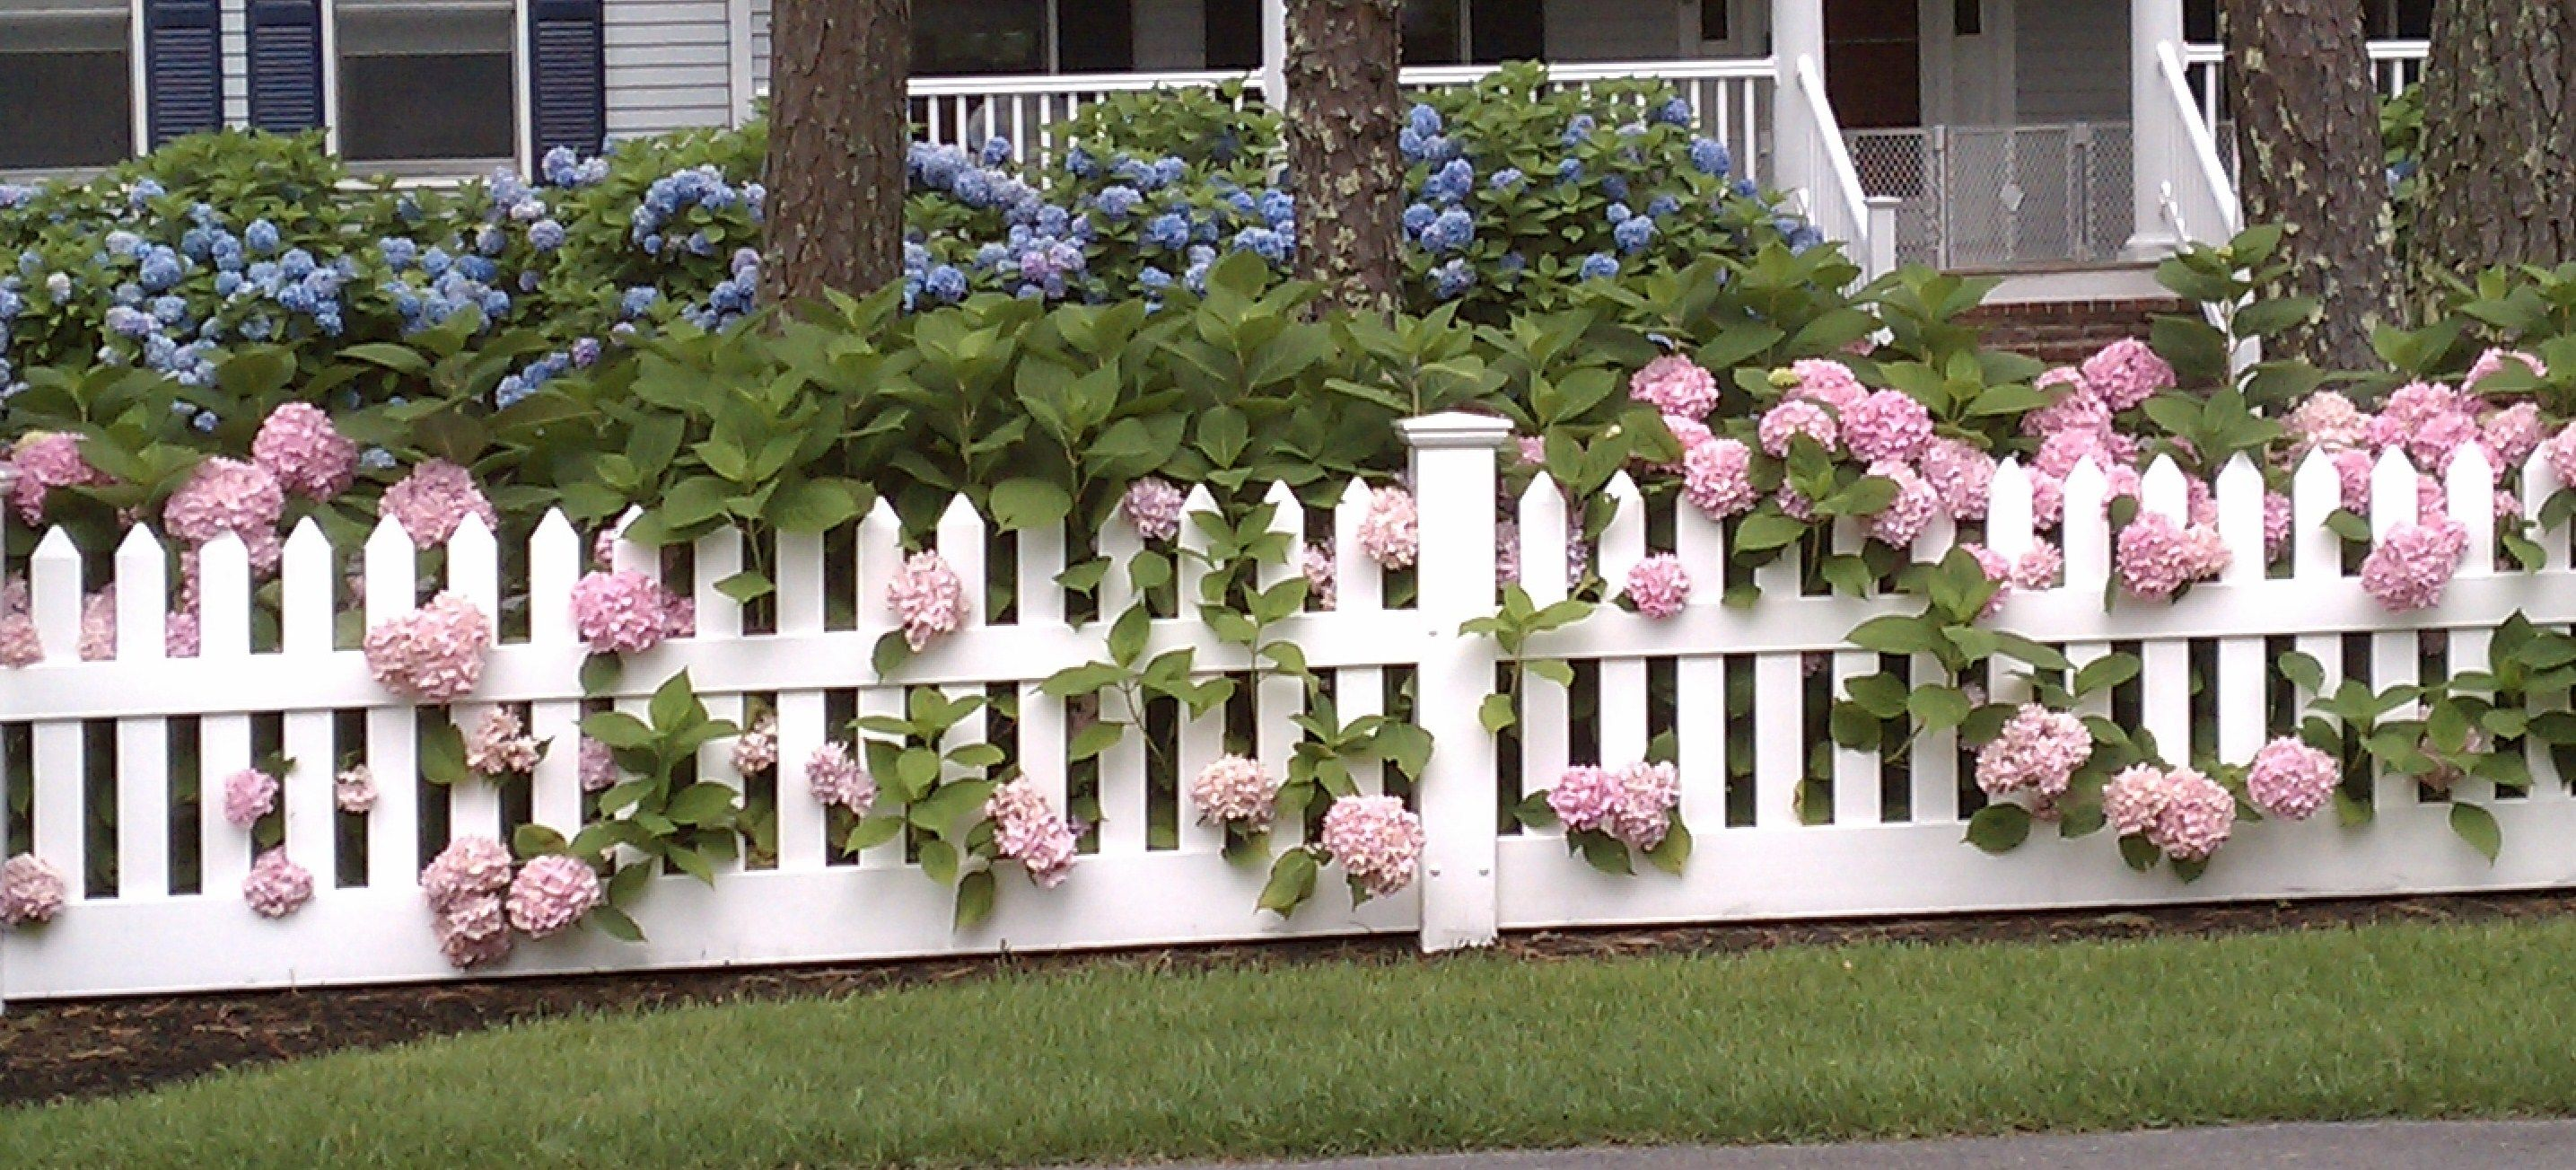 Exceptional Planting A Garden | My Uncommon Slice Of Suburbia